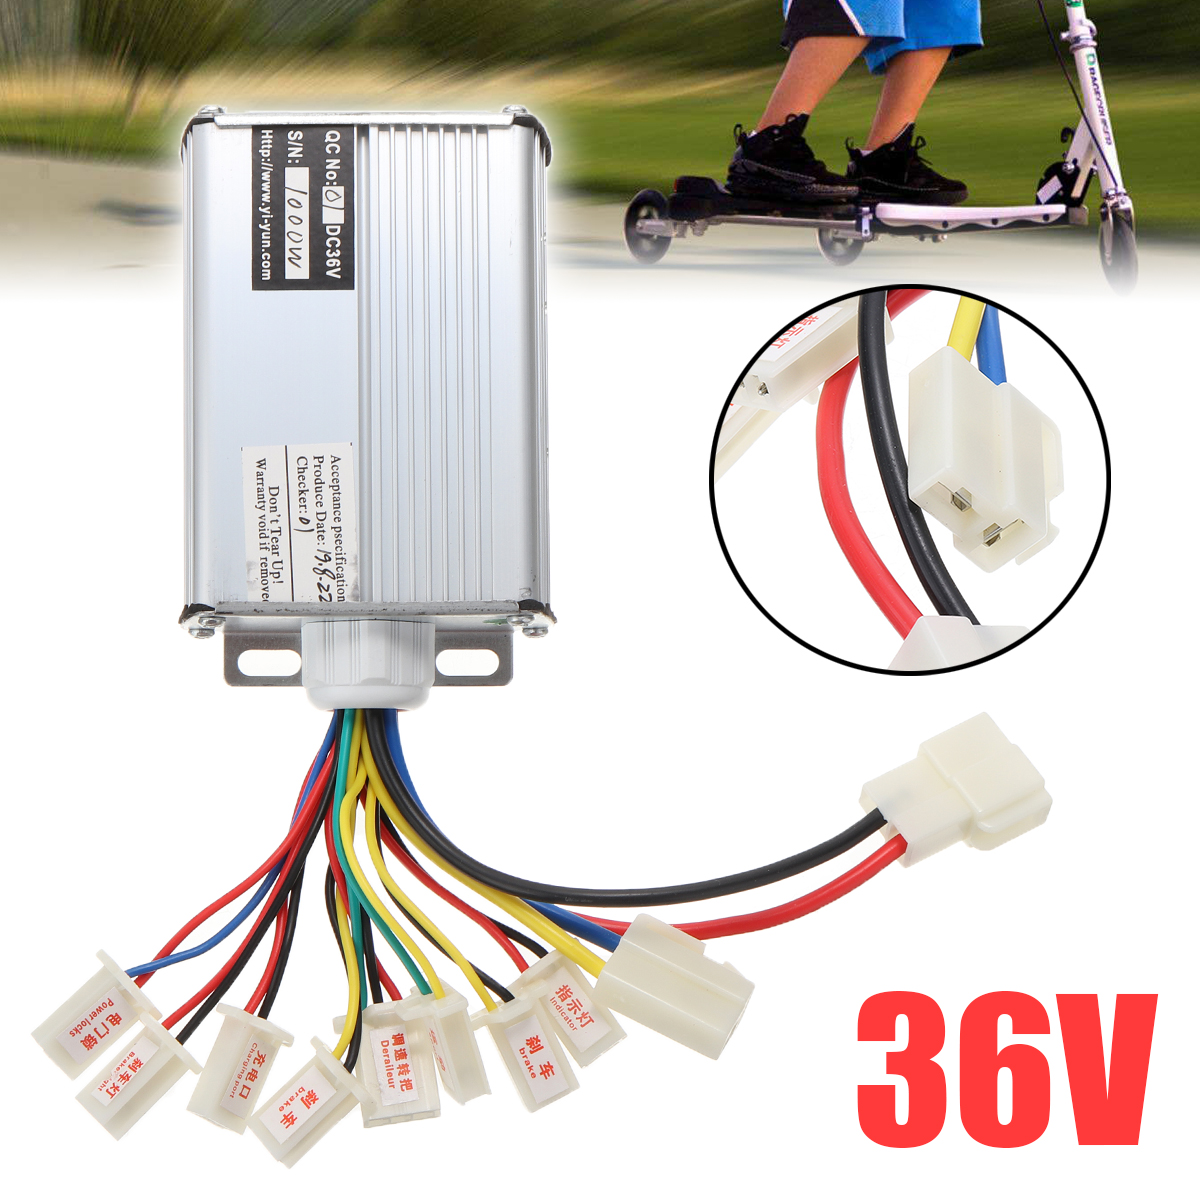 1PC 36v 1000w Electric Bike Brushed Motor Controller Engine Battery Connector For Electric Bike Scooter E-bike Accessories